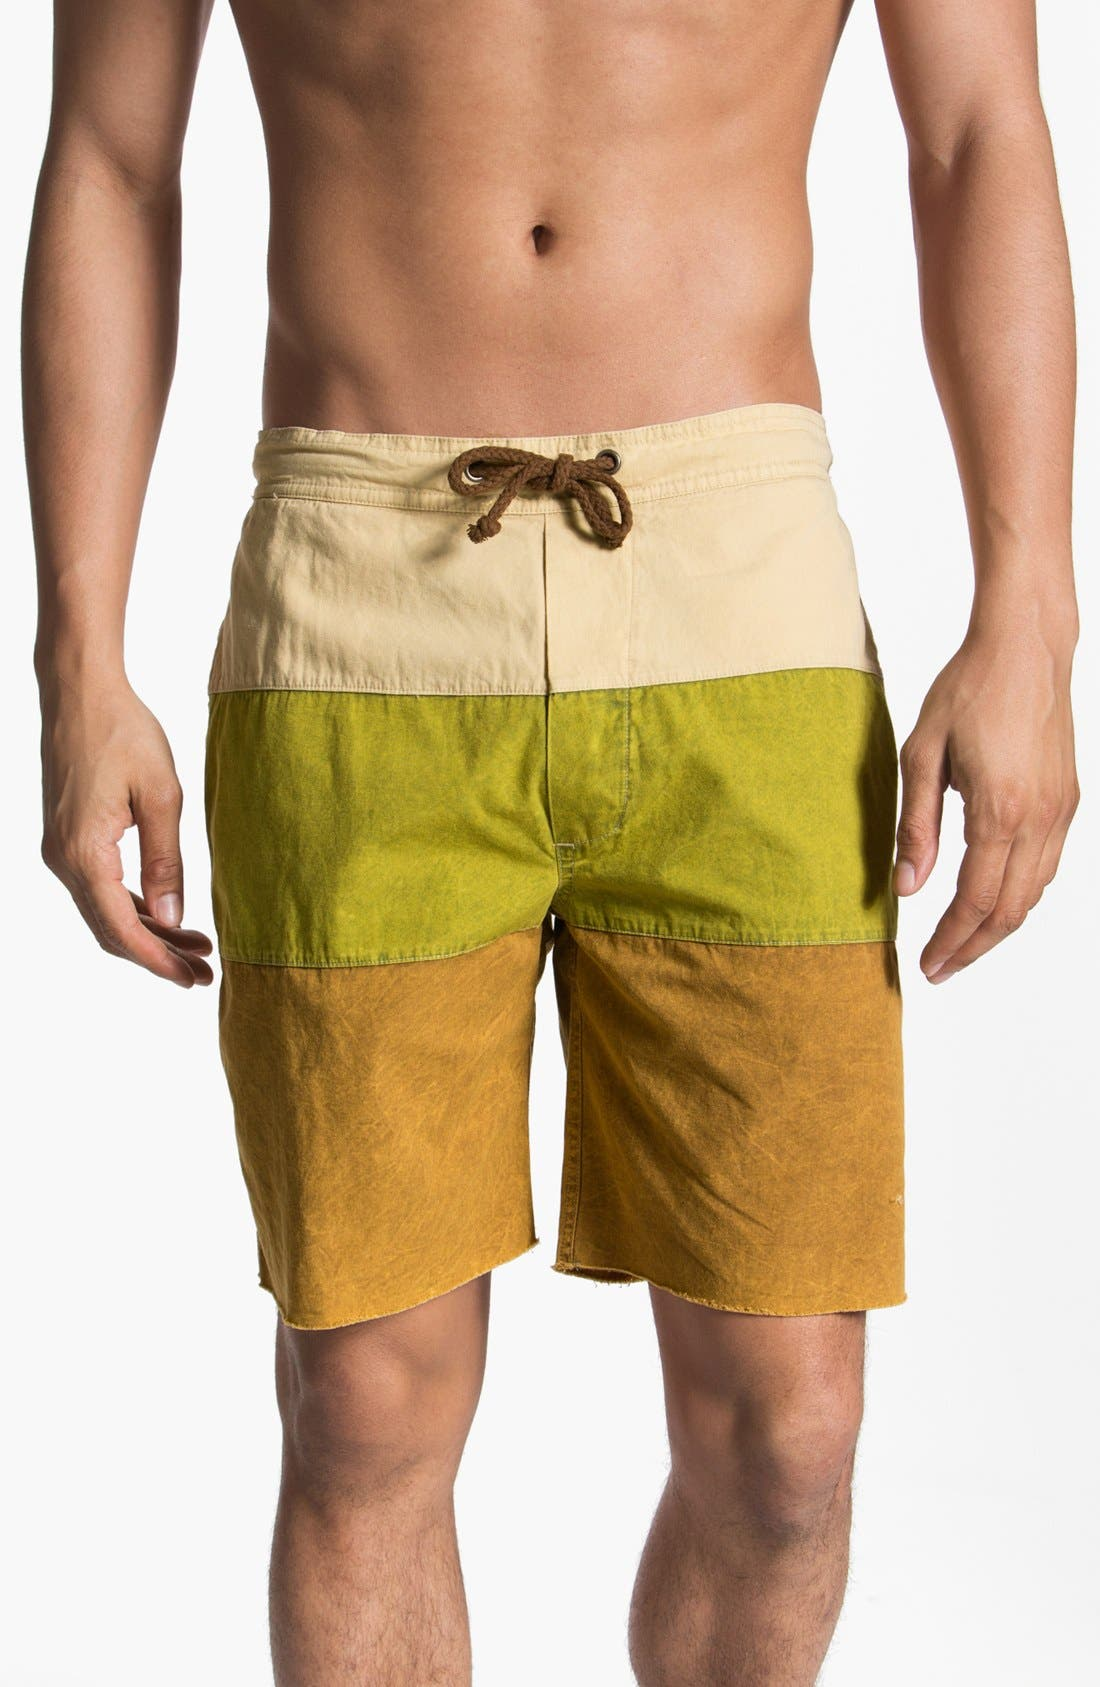 Main Image - Vanguard '3 Way Fusion' Swim Trunks